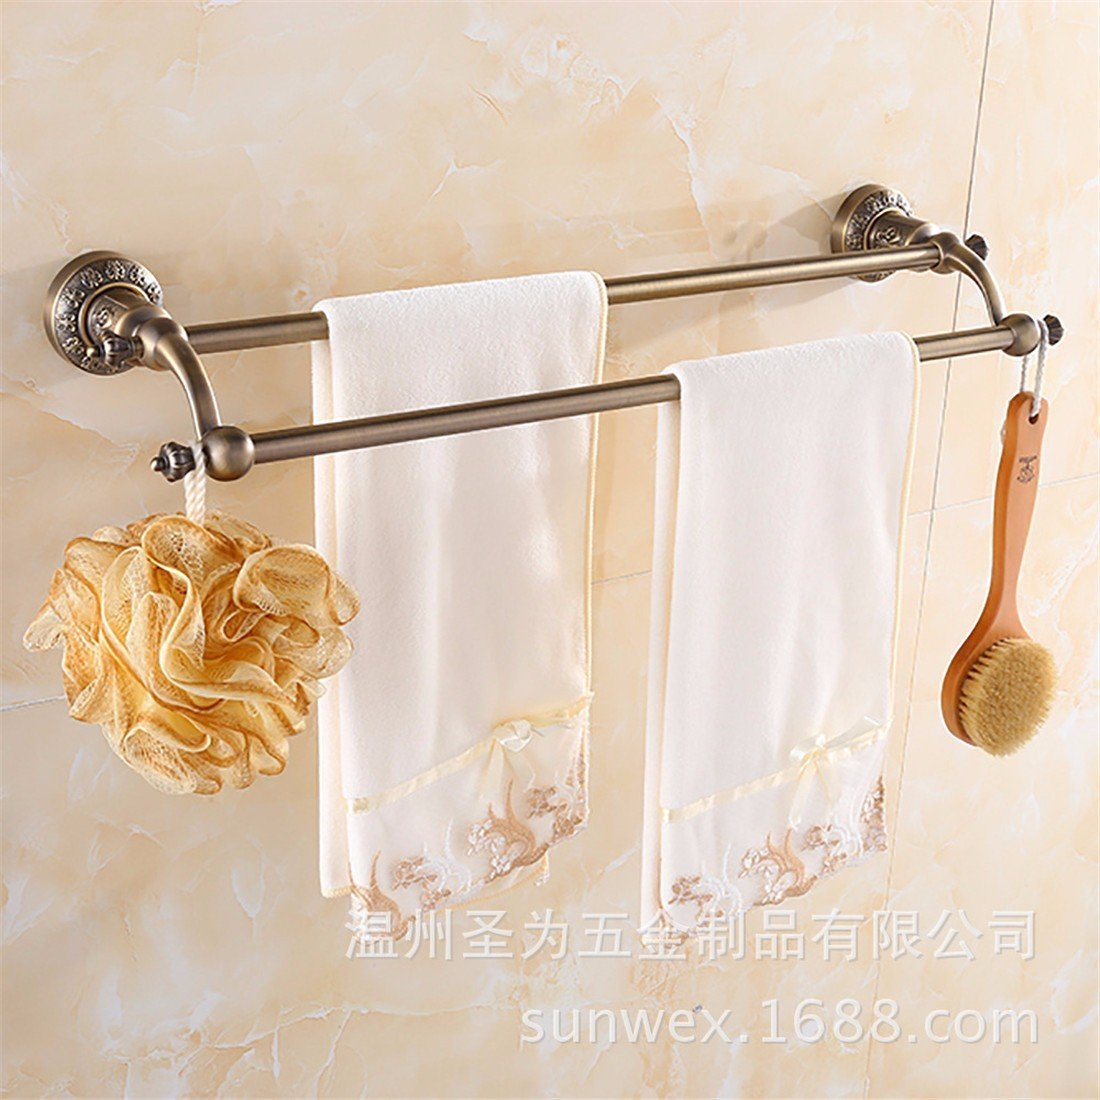 LAONA European style antique bronze carving, zinc alloy bathroom fittings, towel bar, toilet paper rack,Double pole